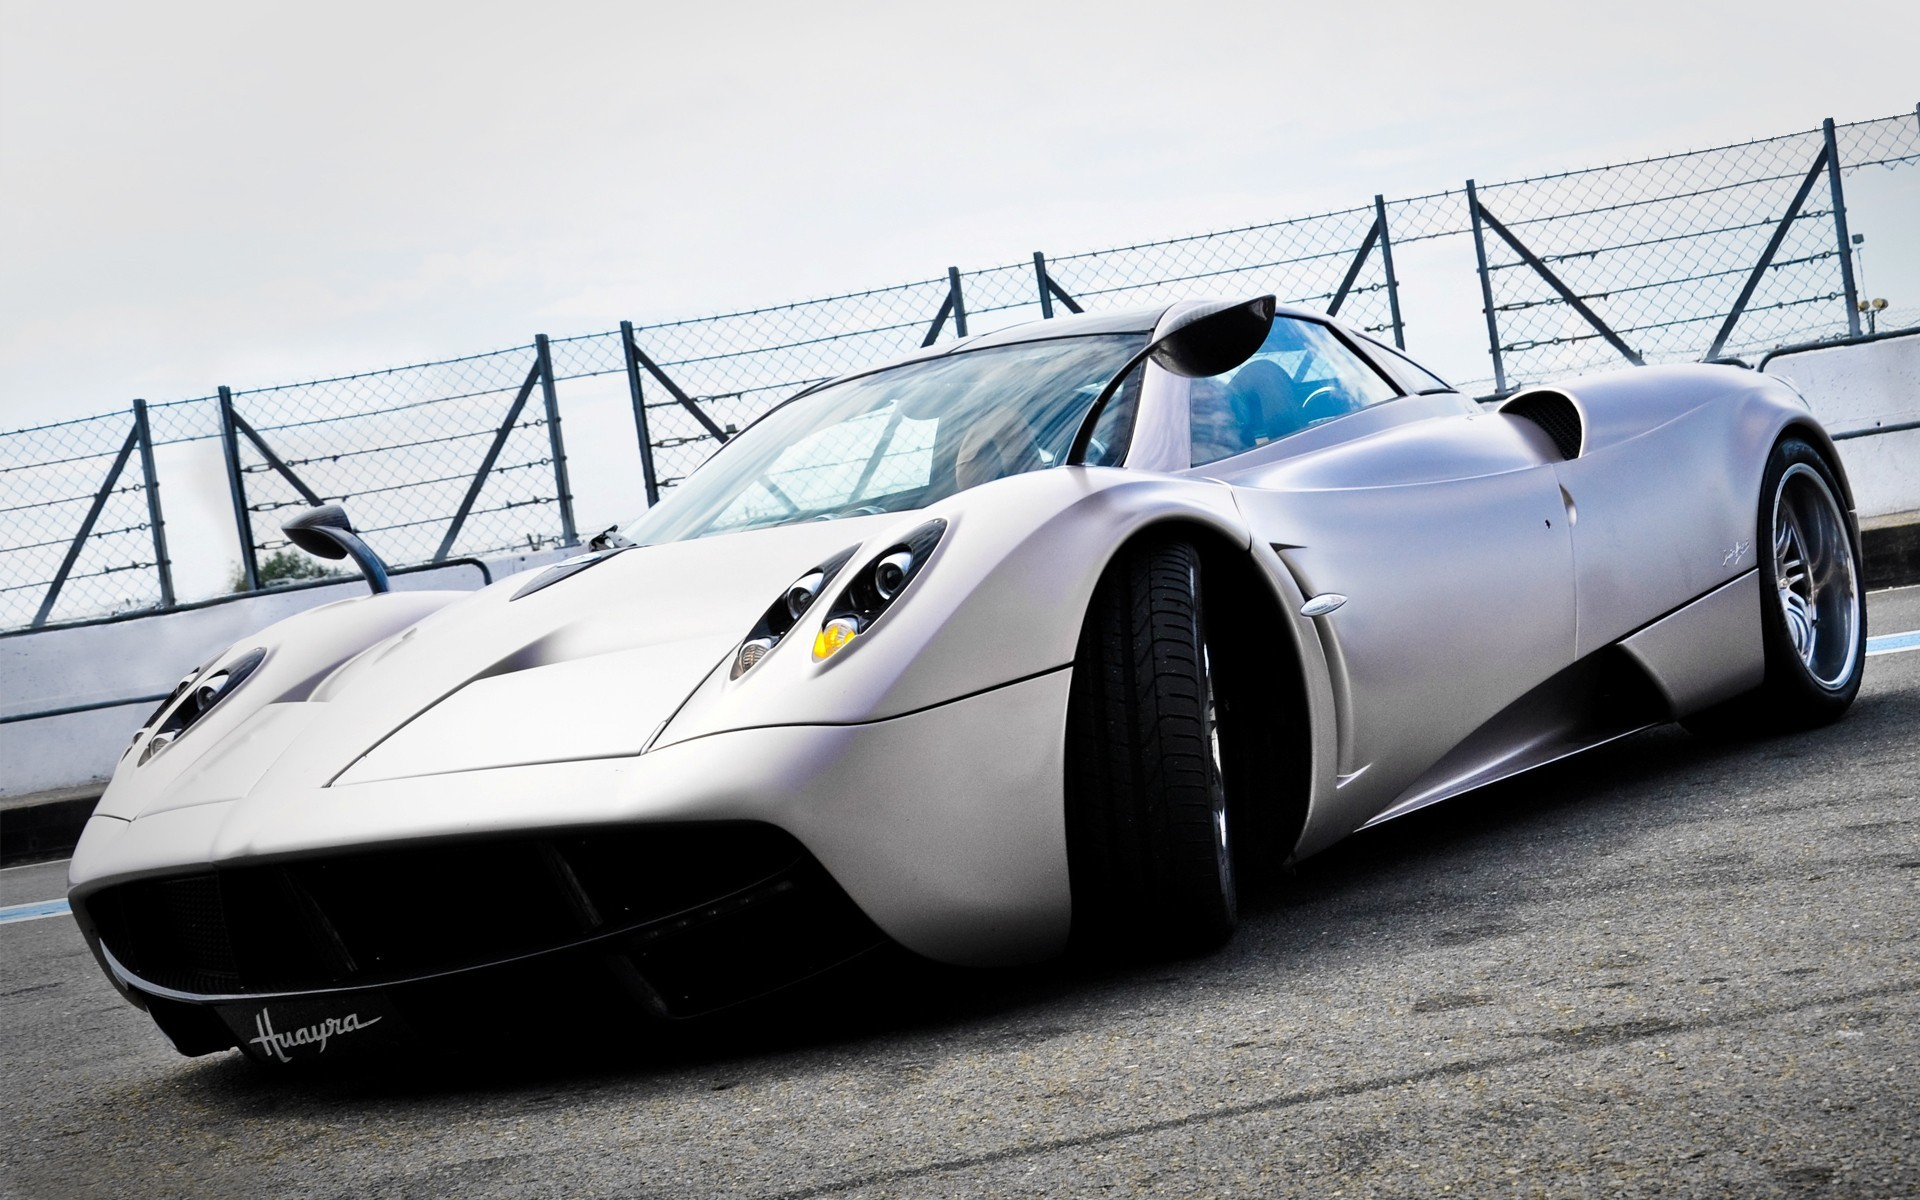 Pagani-car-wallpaper-wp421289-1